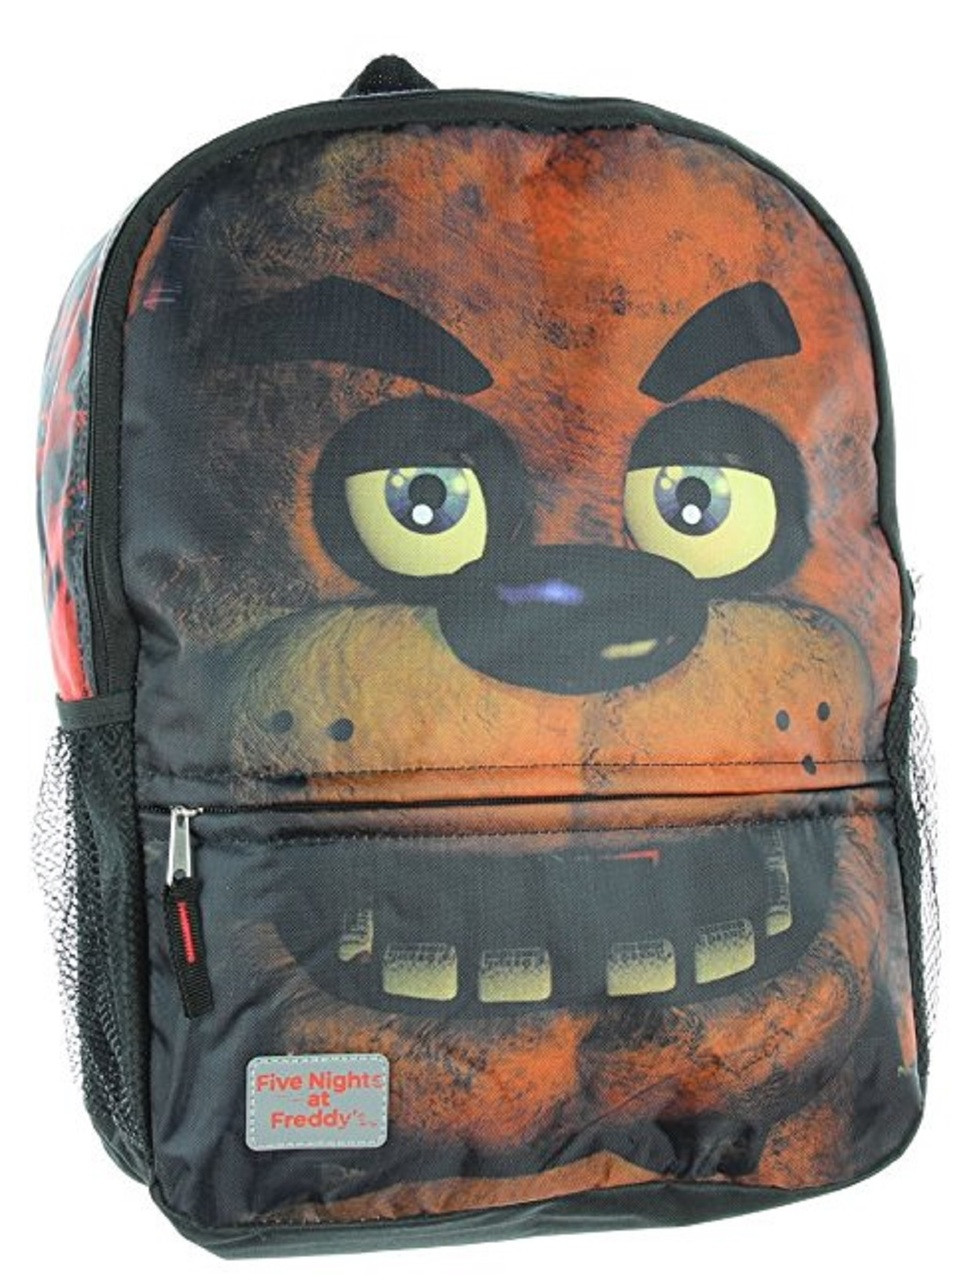 Five Nights at Freddy's - Large 16 Inch - Backpack - Boys